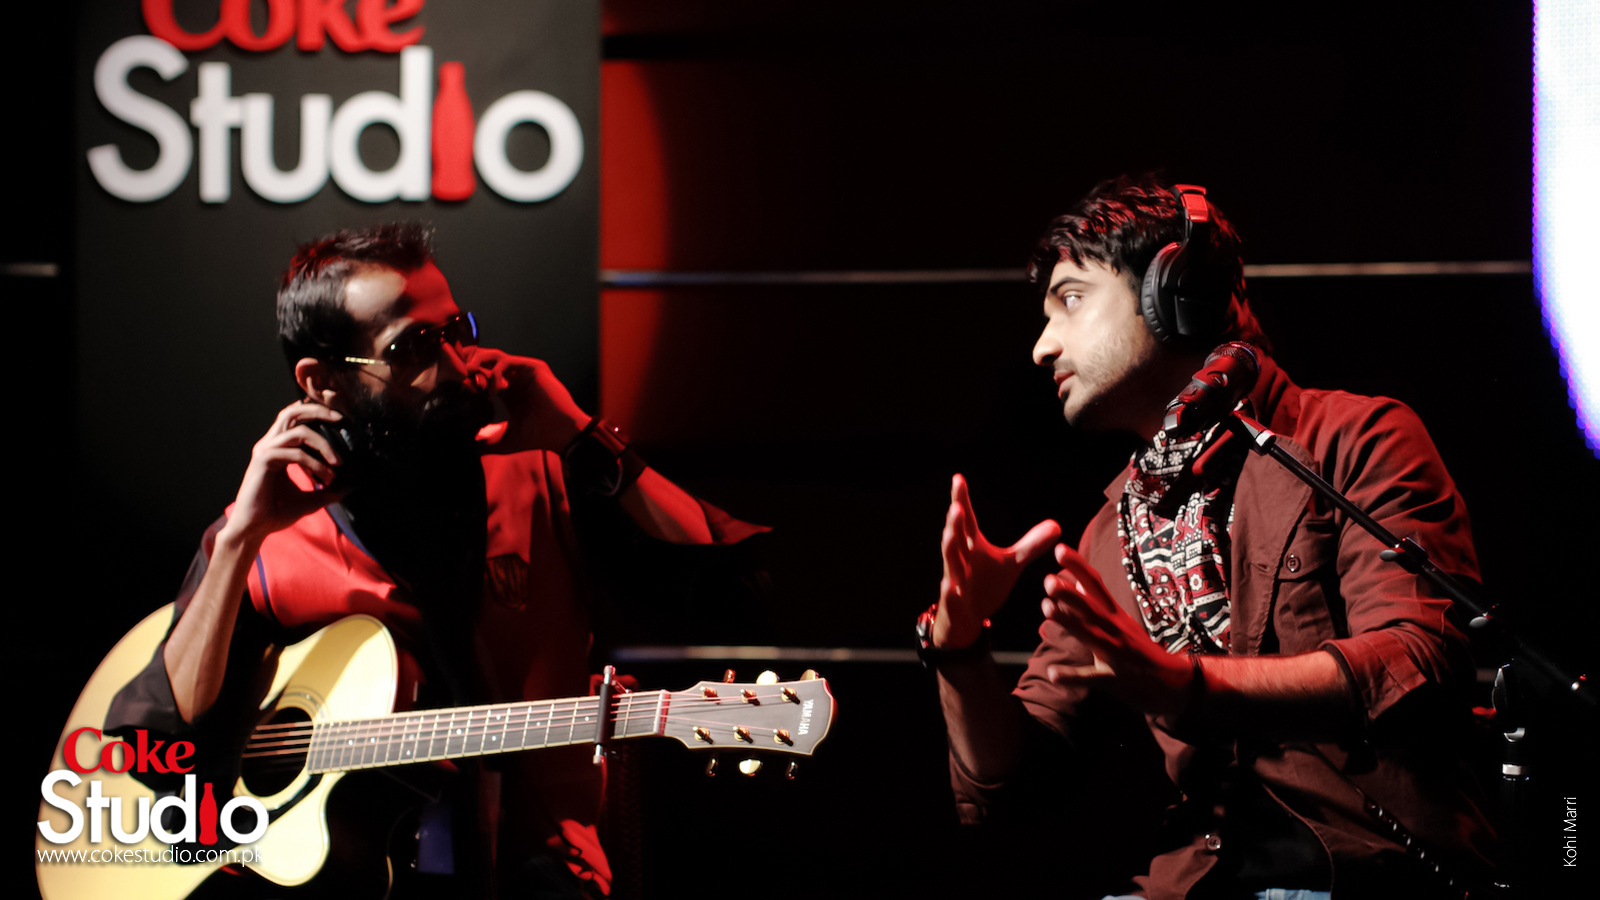 The Sketches Mandh Waai in Coke Studio (Video/Mp3/Lyrics) - Pakium.coke studio